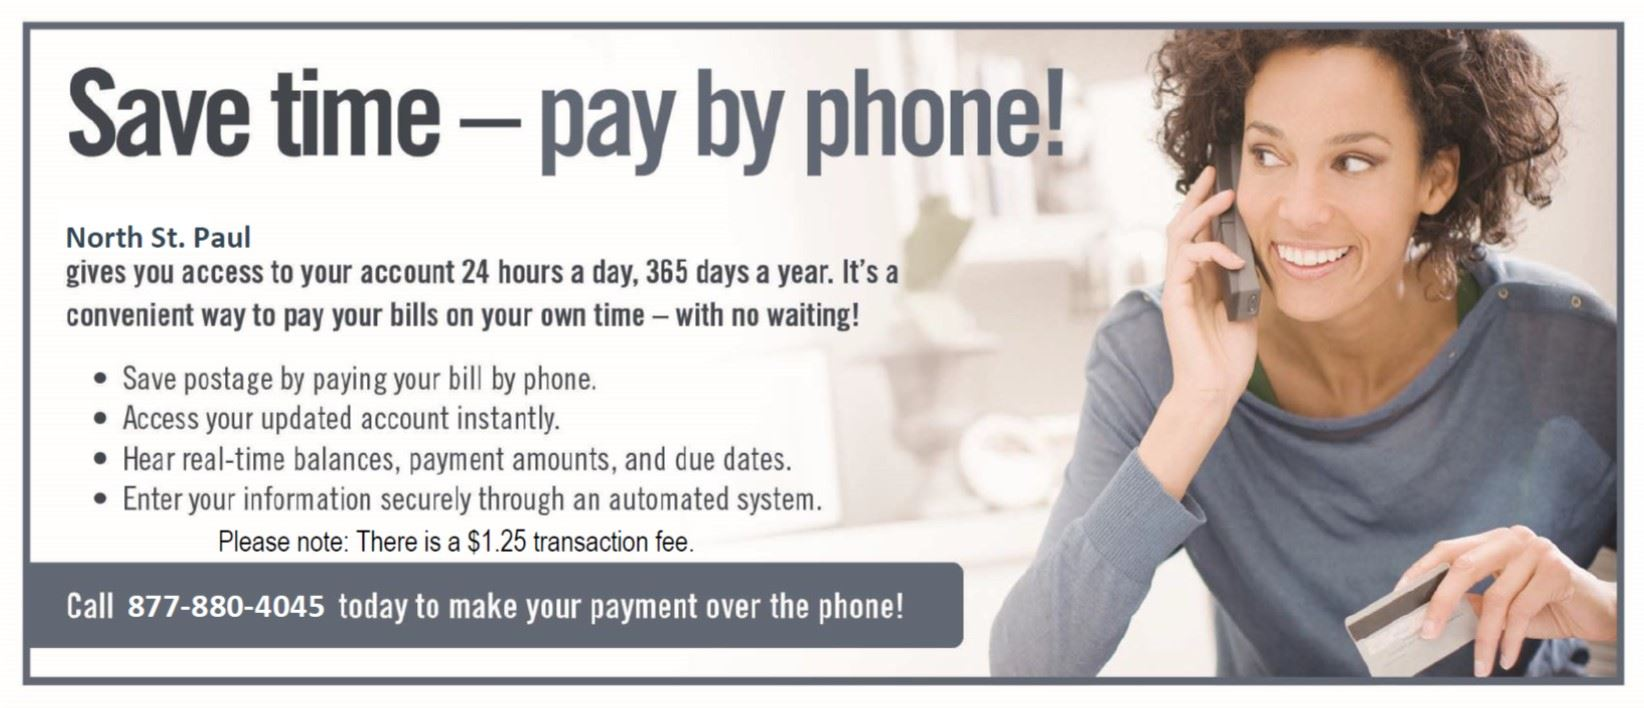 Save time pay by phone